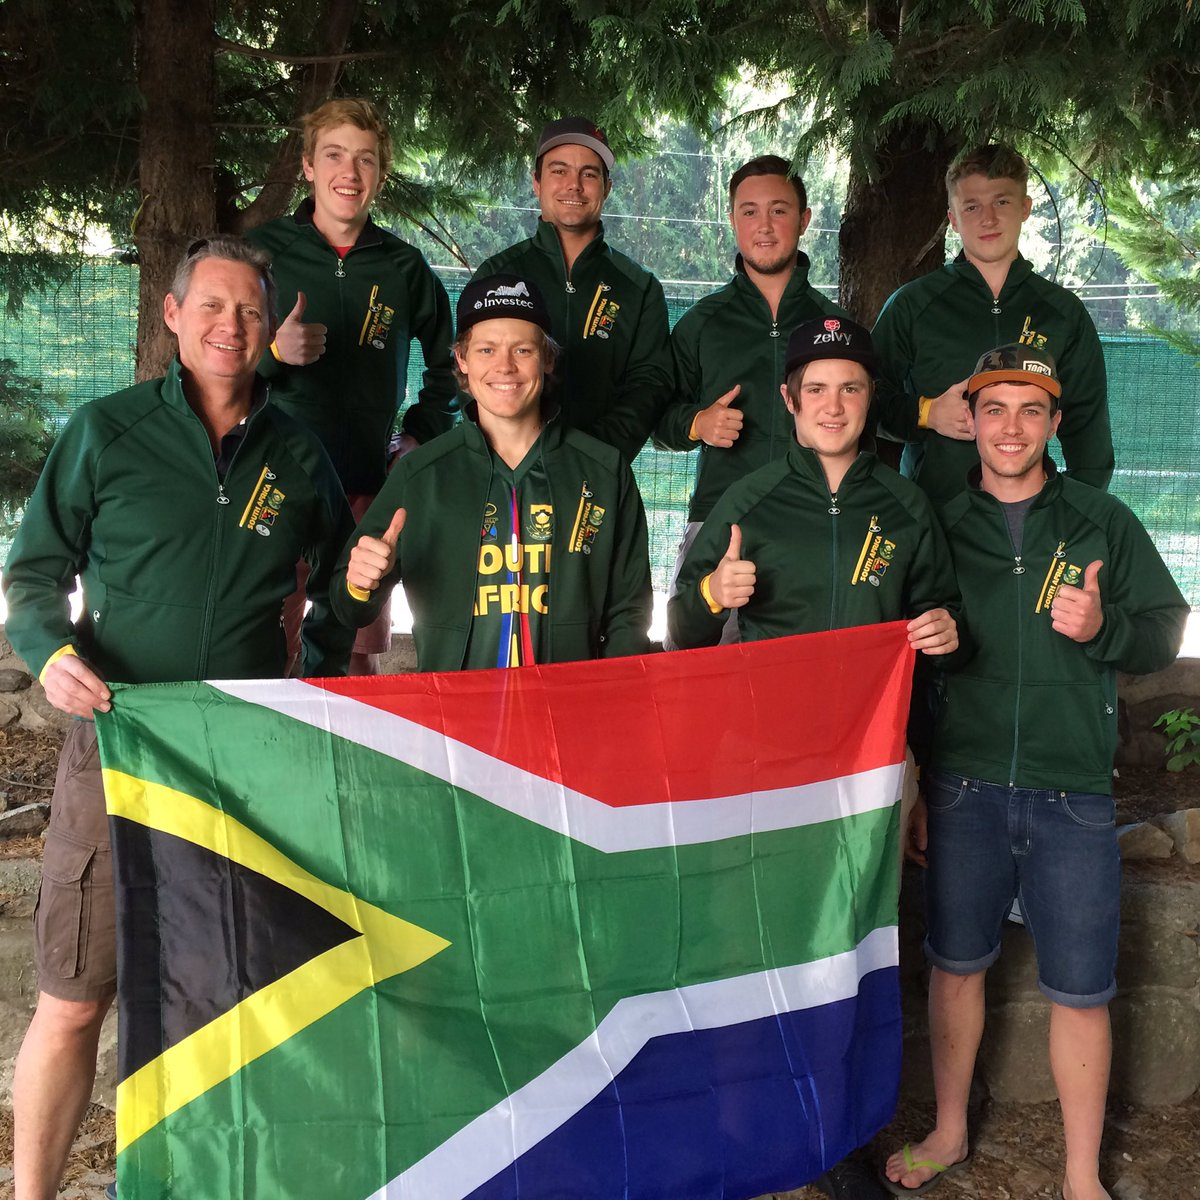 The South African Downhill Team prepares ahead of the 2016 UCI MTB World Downhill Championships in Val di Sole, Italy from 6-11 September. Photo: Struan McMaster